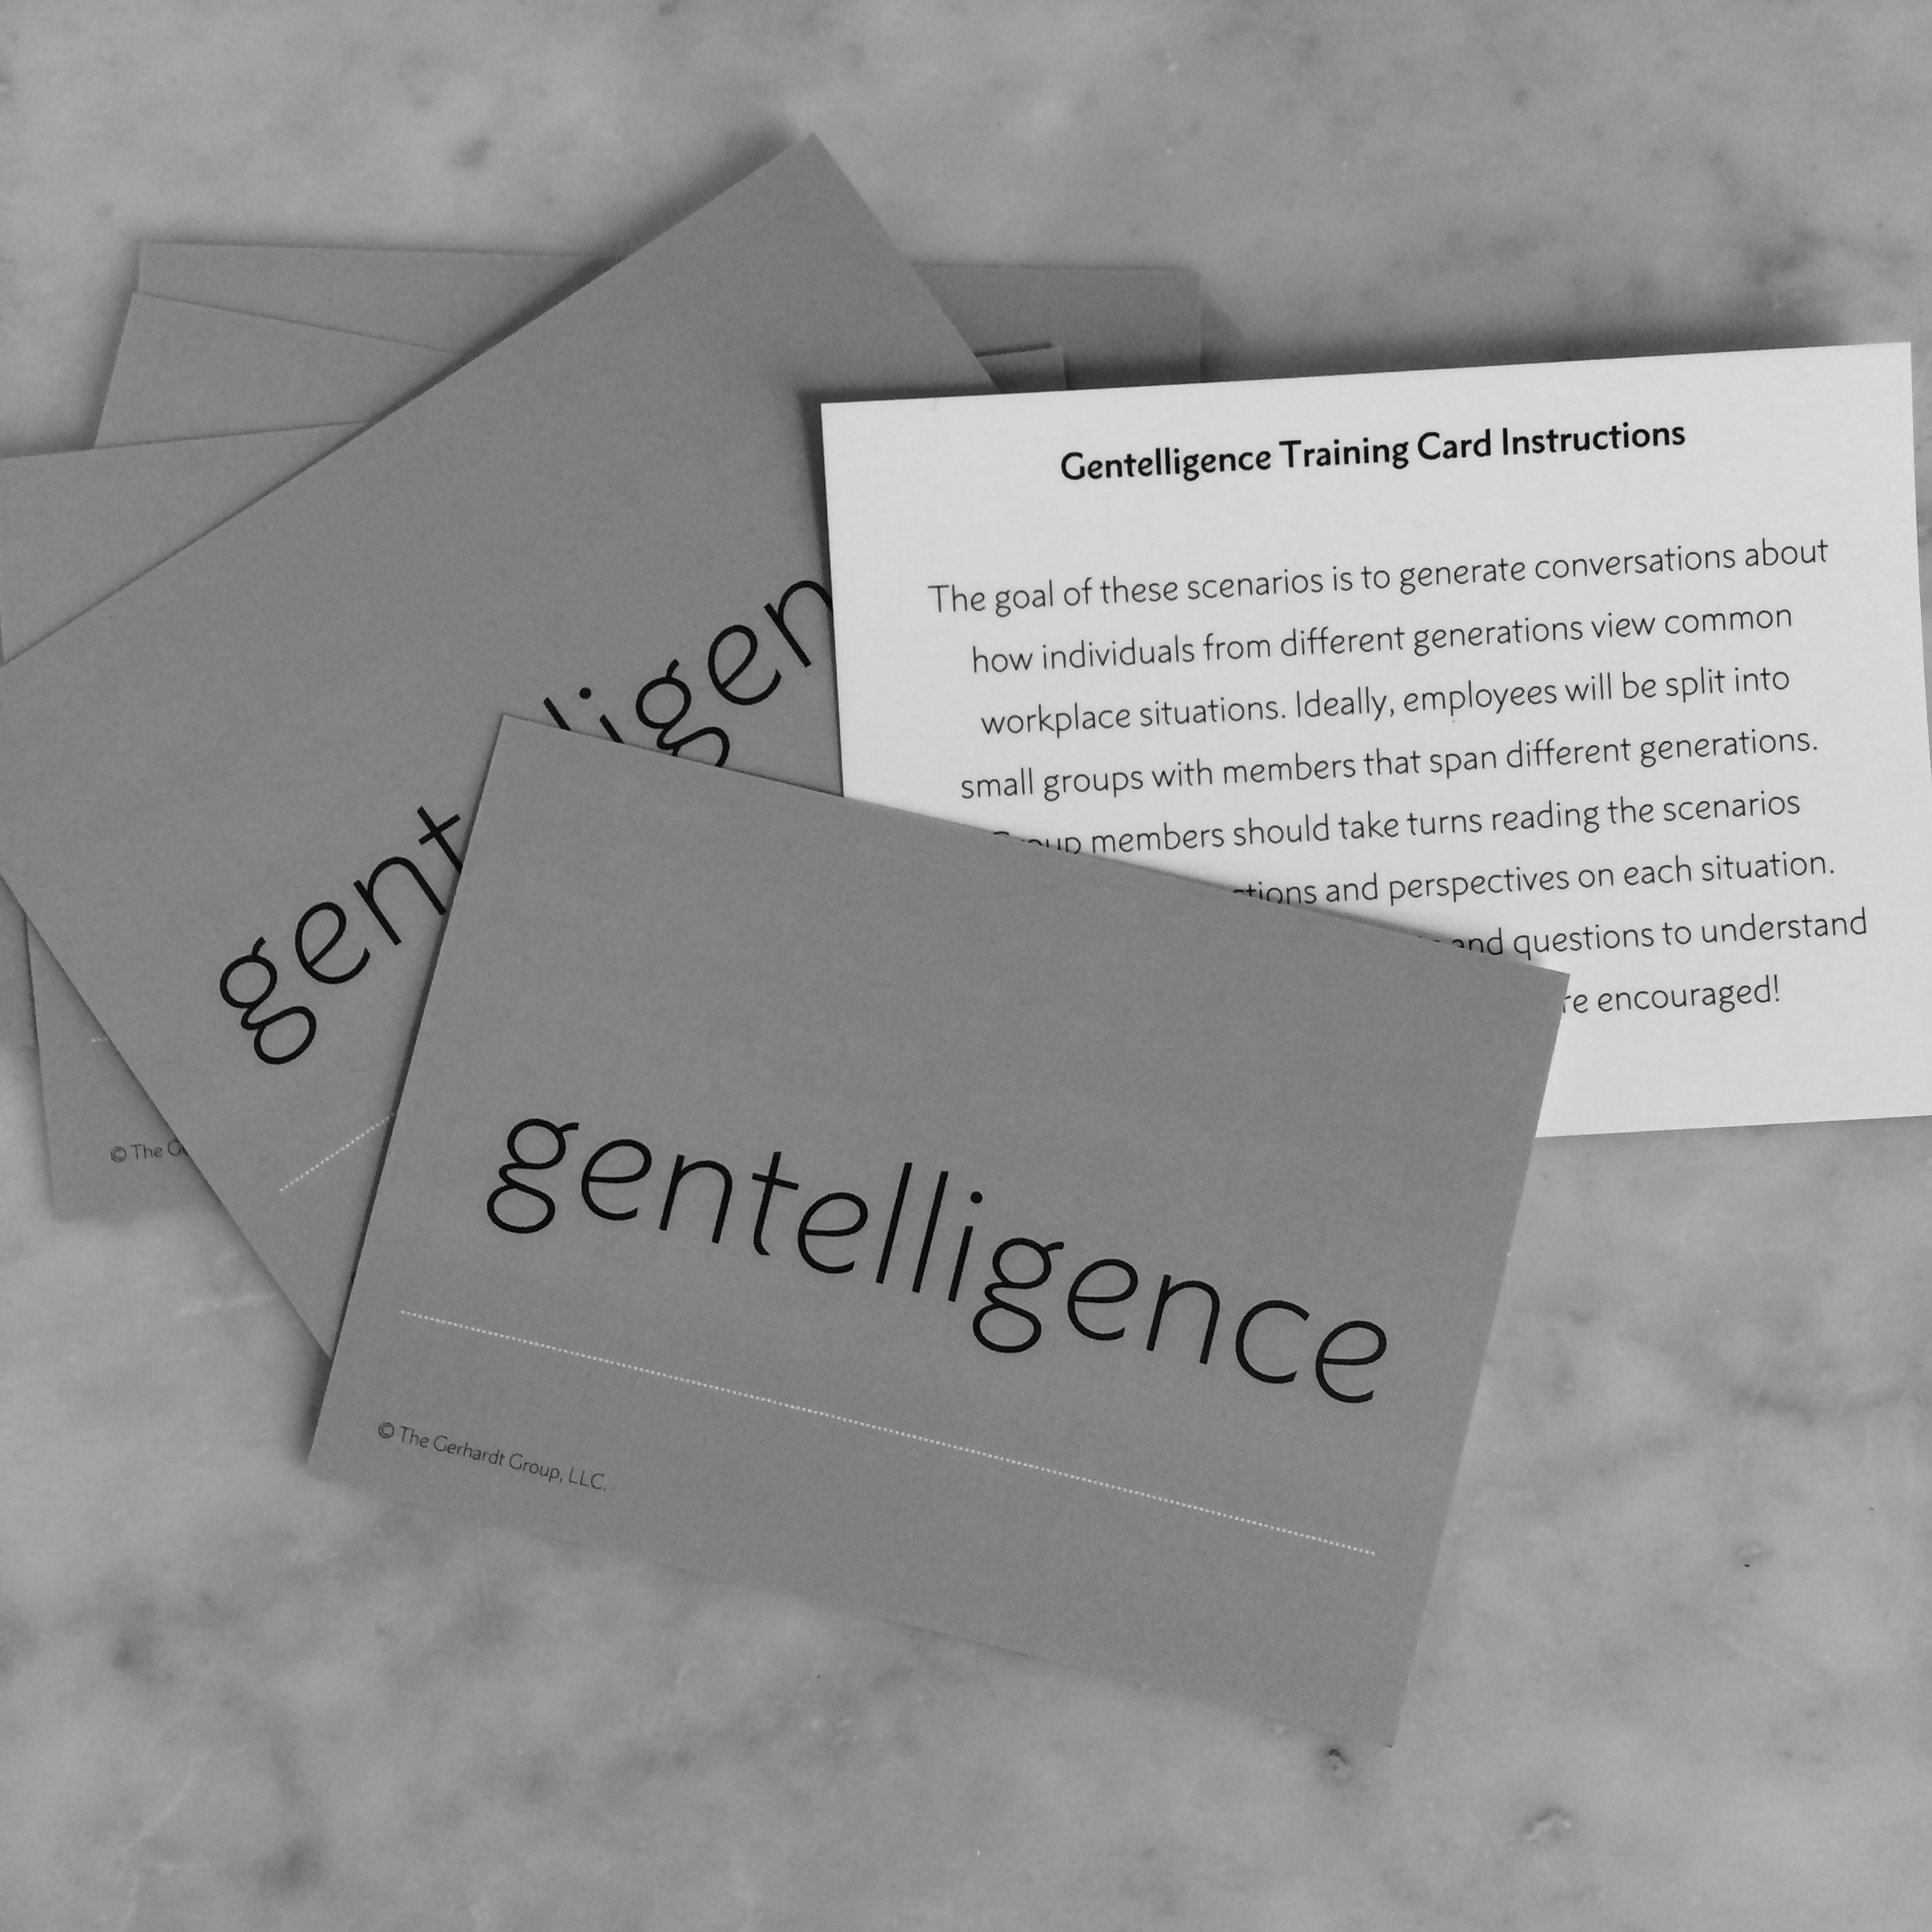 Buy your own Gentelligence2® training materials & run your own Generational training at your organization!